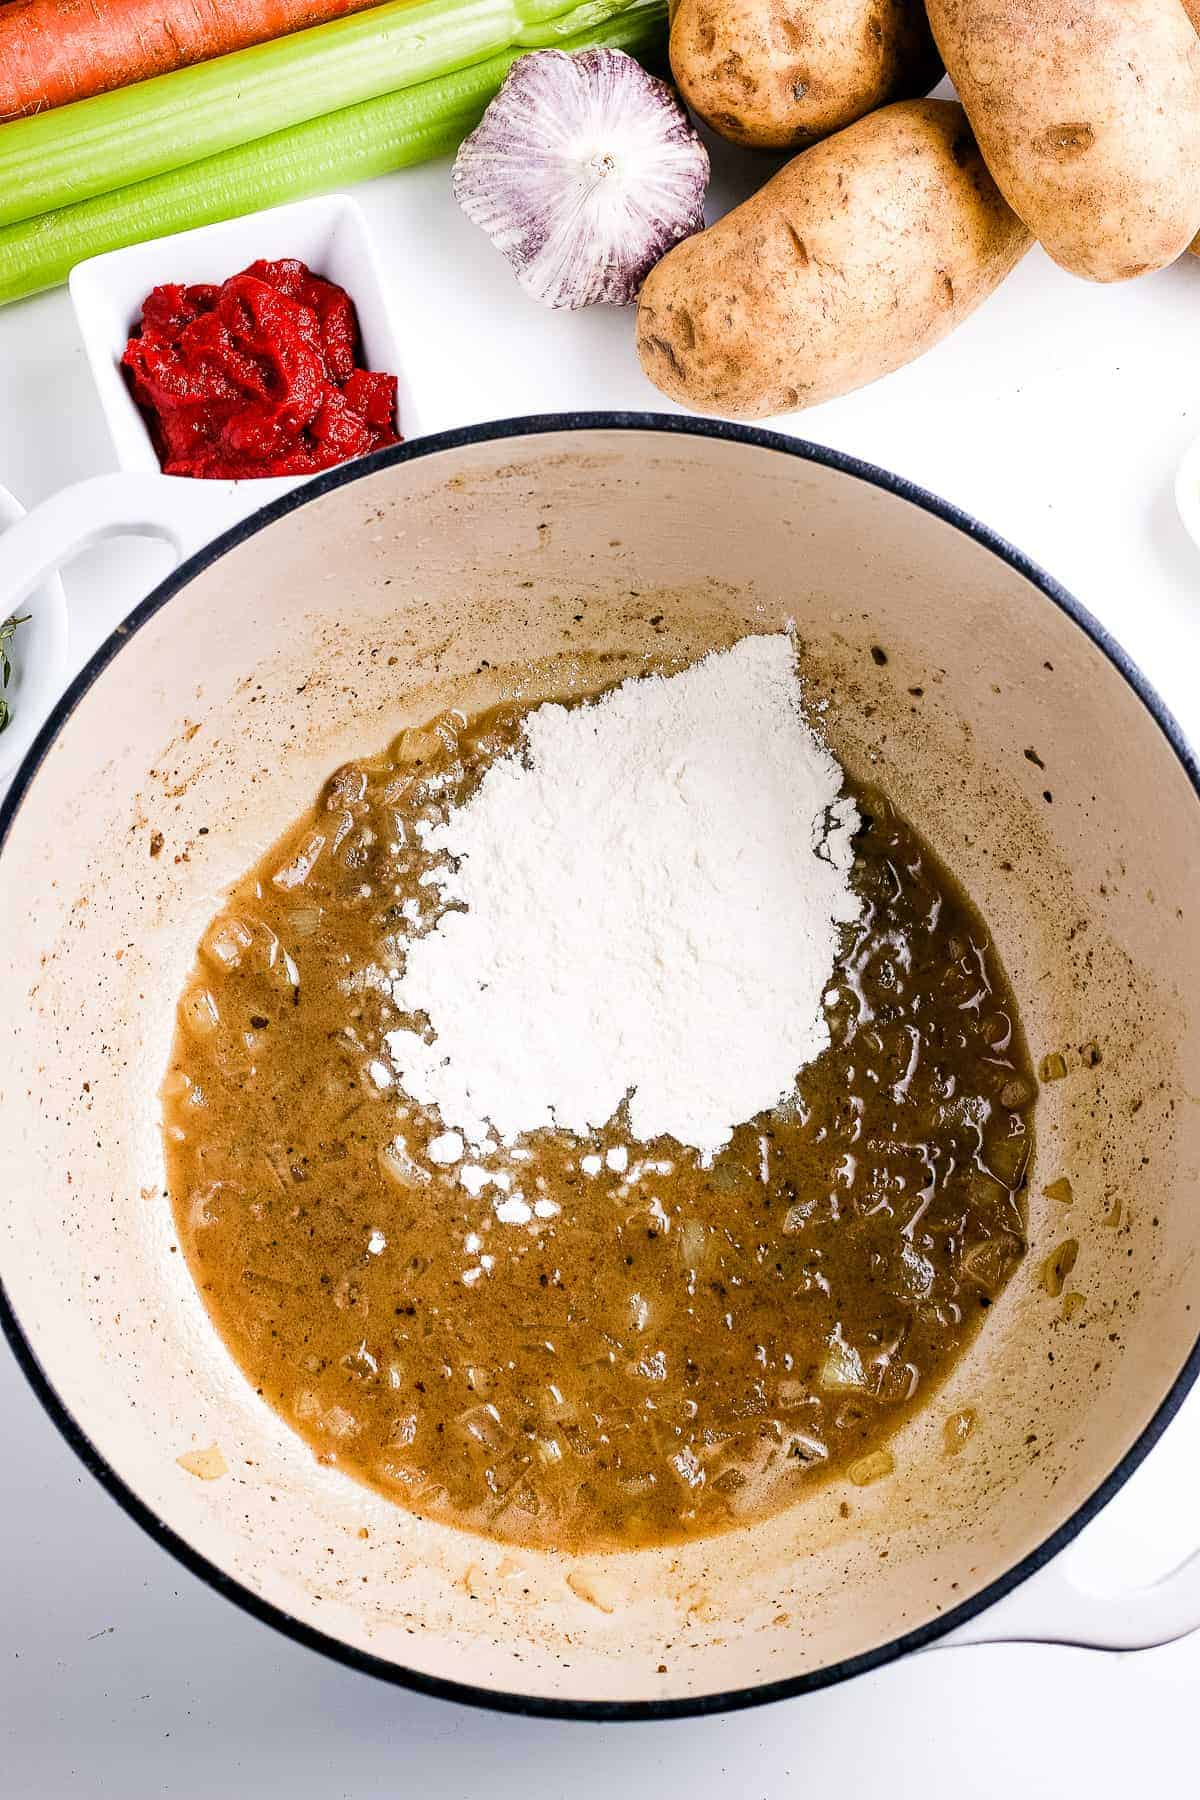 Flour added to drippings to make a roux